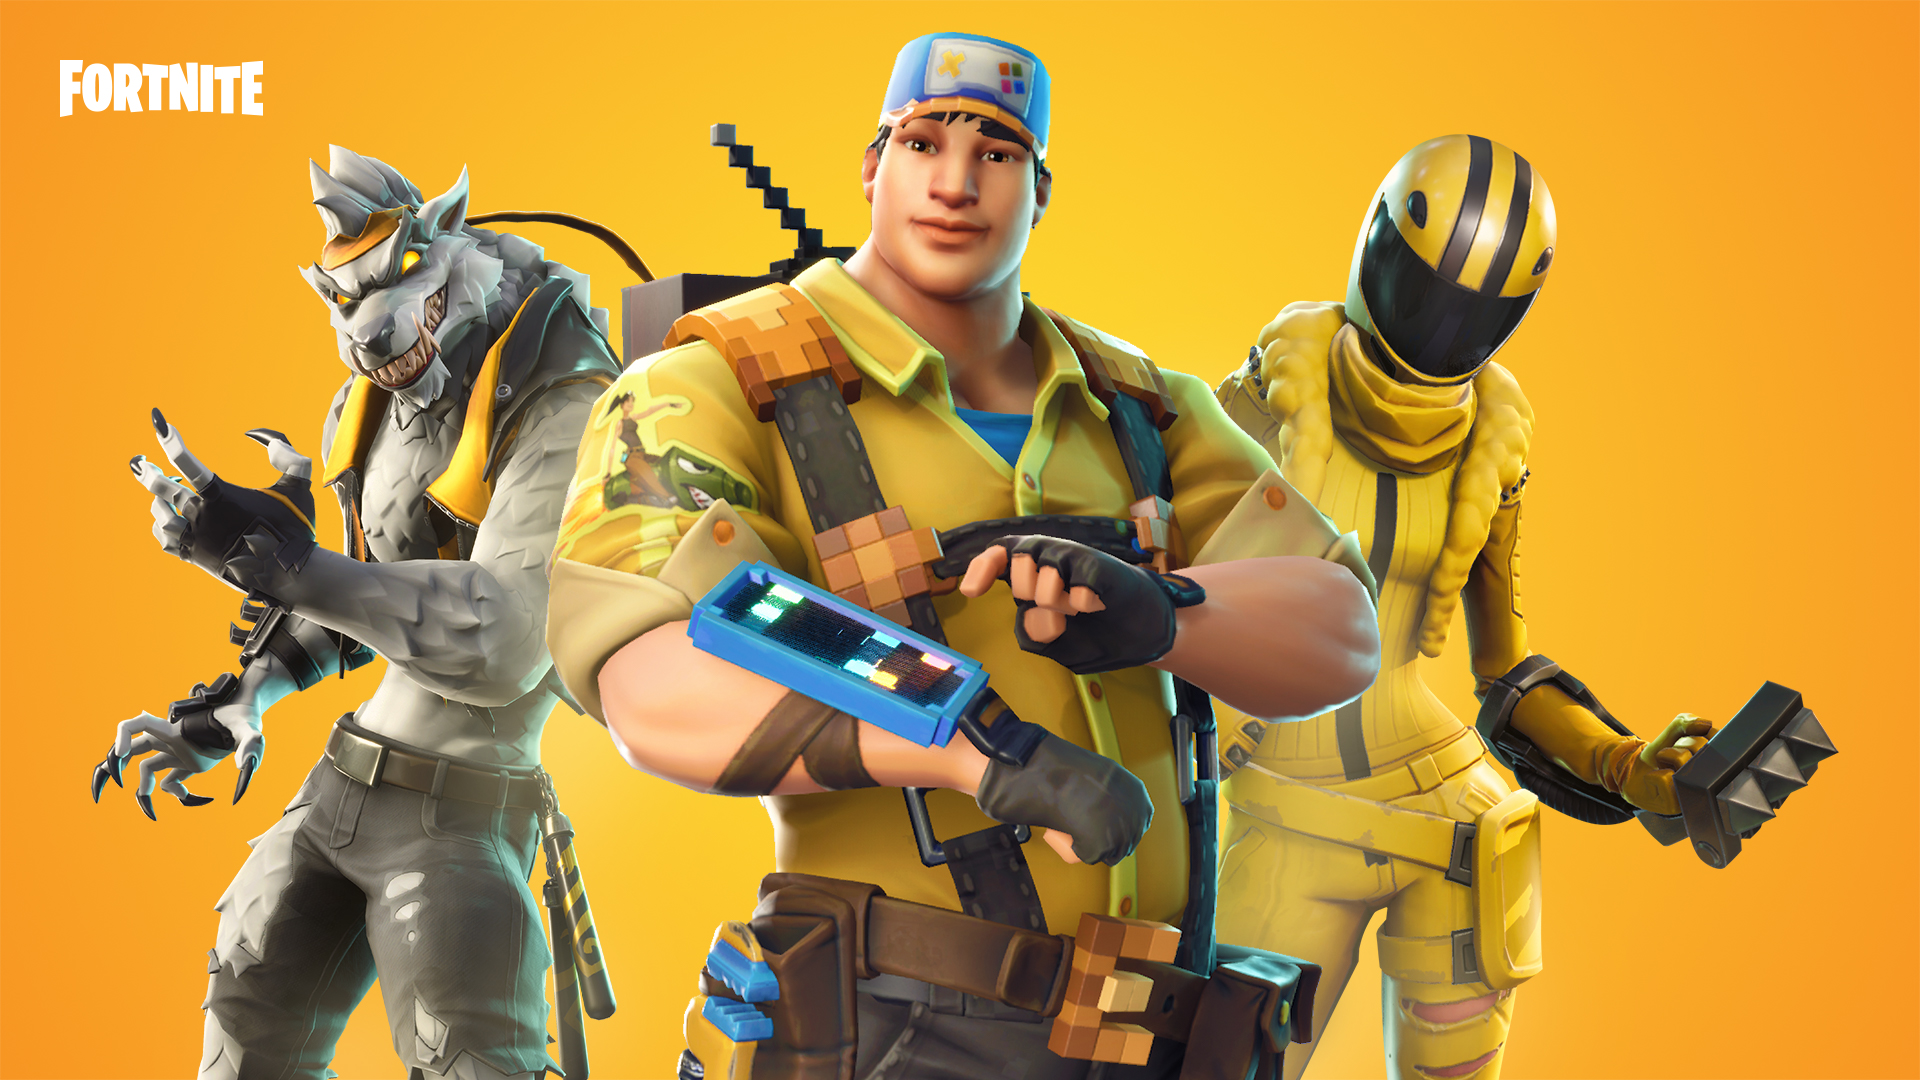 All Leaked Skins And Emotes Found In Fortnite Patch V8 10 Dot Esports Most of the time they are found via the majority of the skins below will be added to the store eventually. emotes found in fortnite patch v8 10